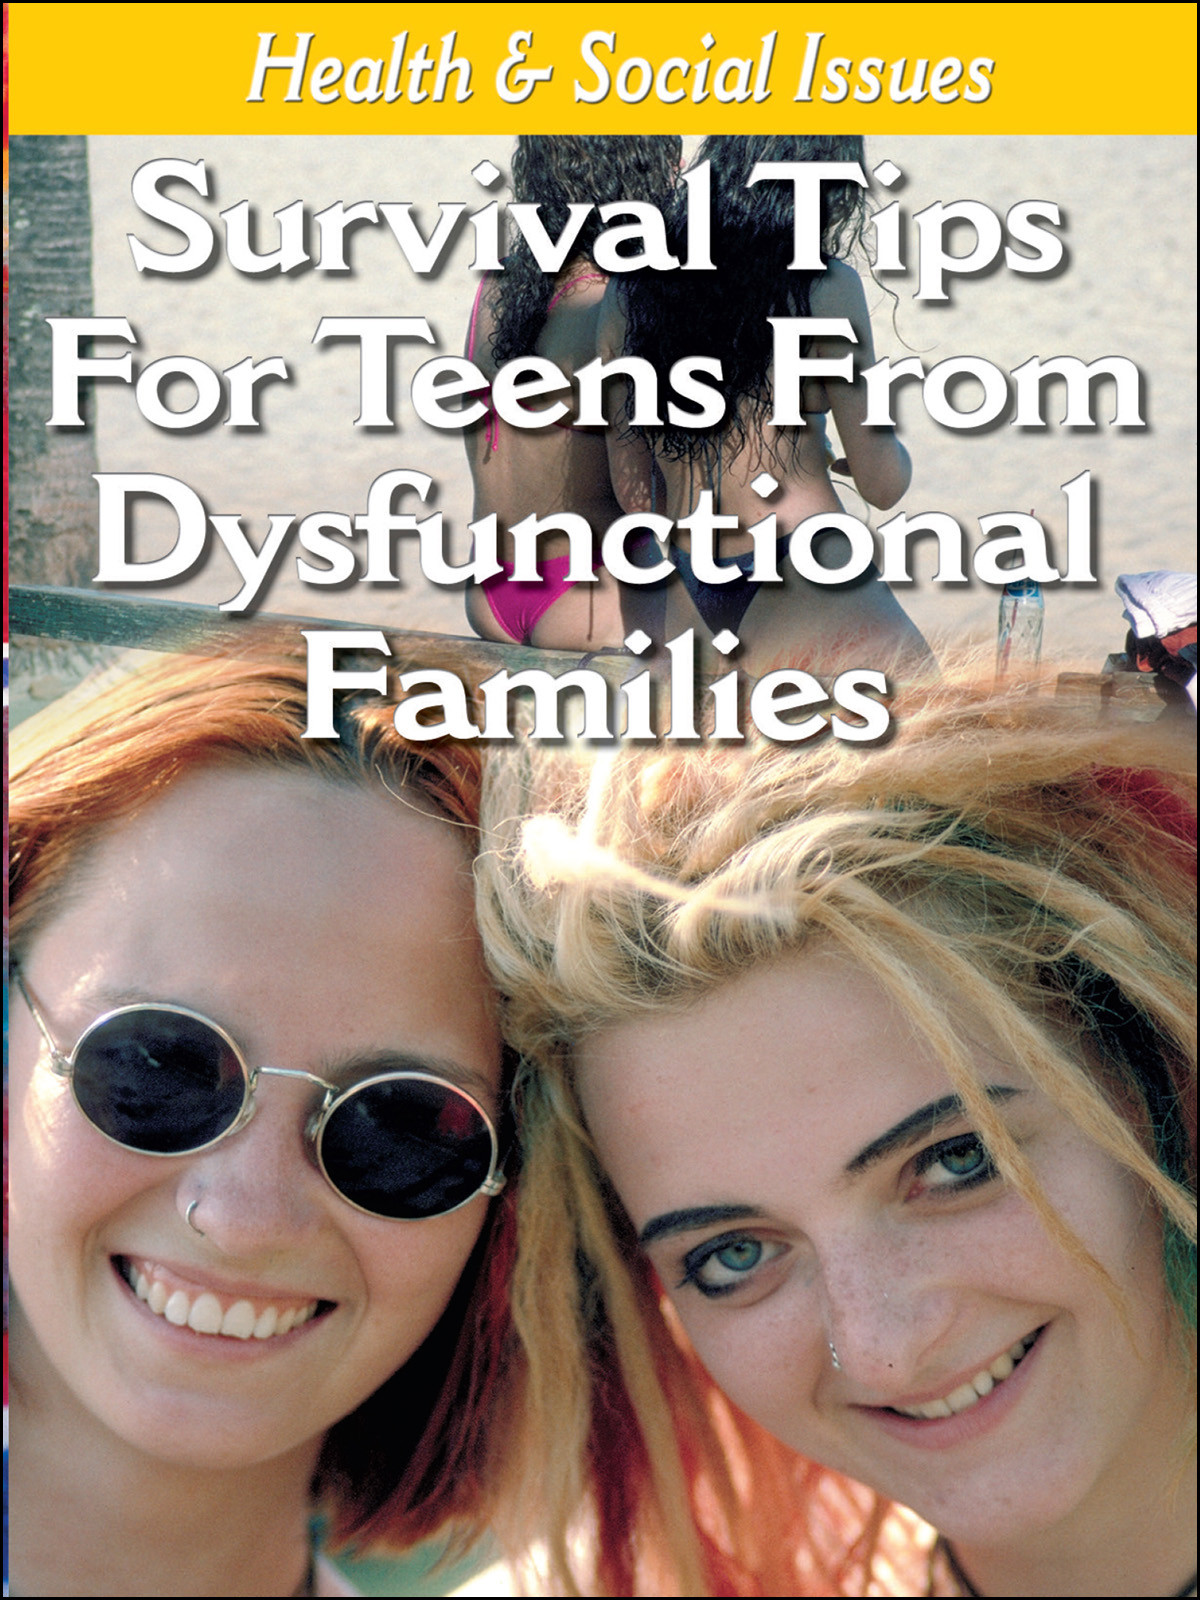 L922 - Survival Tips For Teens Living in Dysfunctional Families